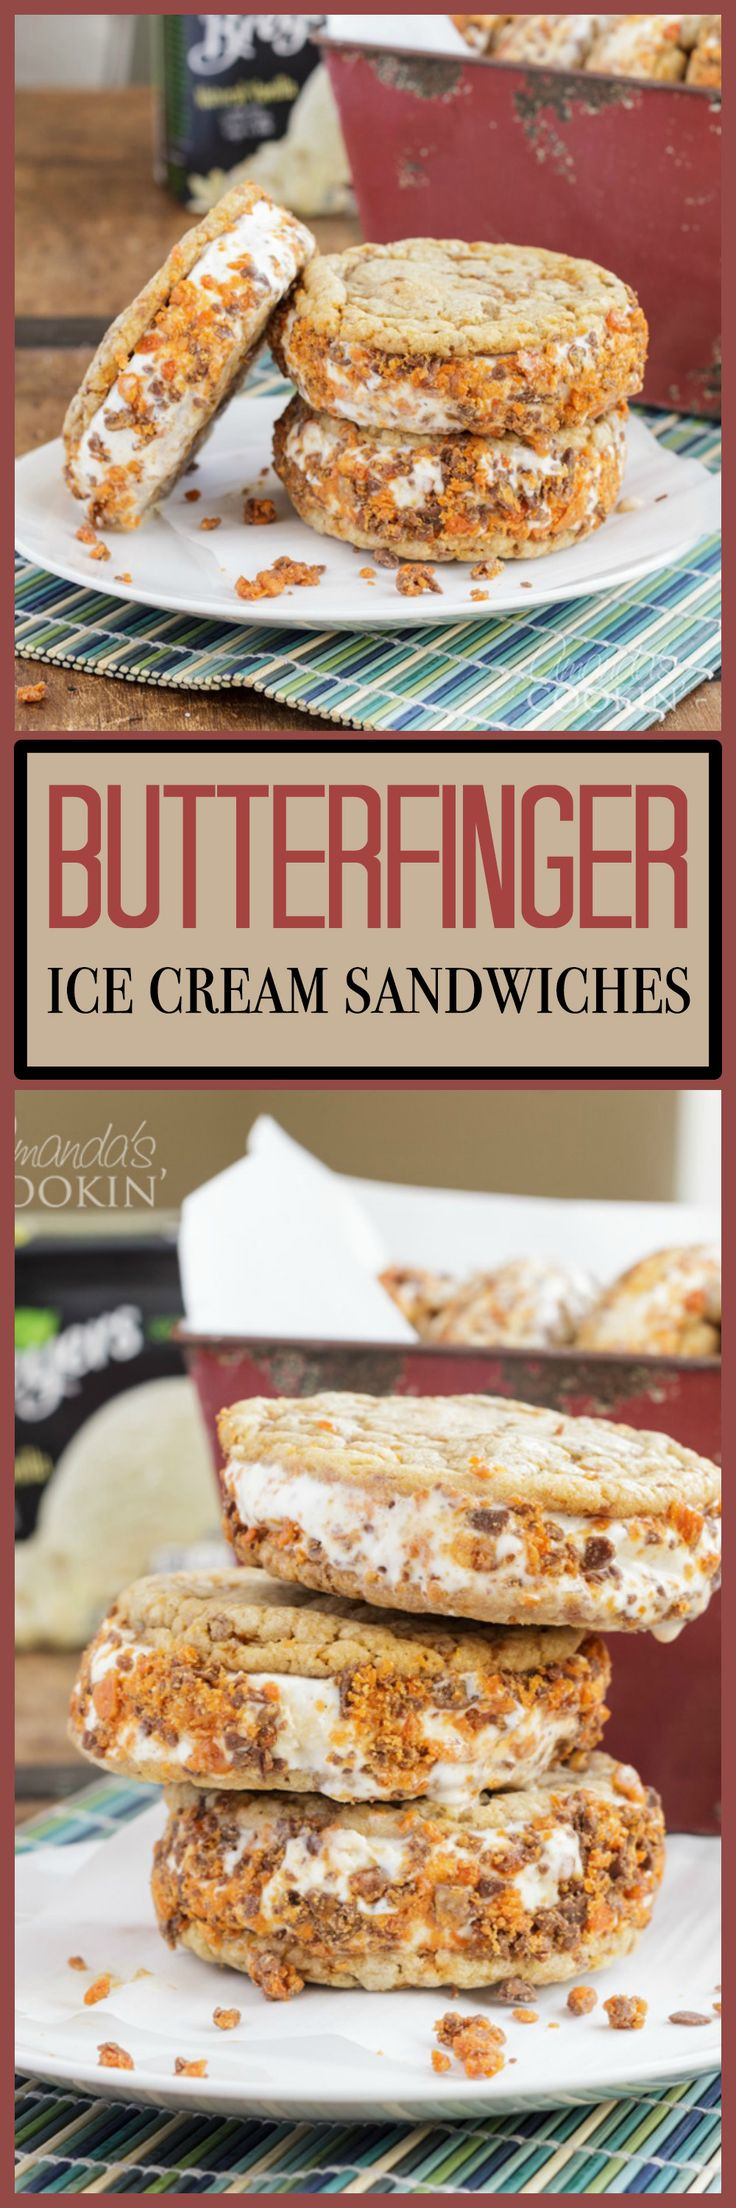 That's right... Butterfinger. Butterfinger ice cream sandwiches. You Butterfinger fans are drooling already, I can tell.